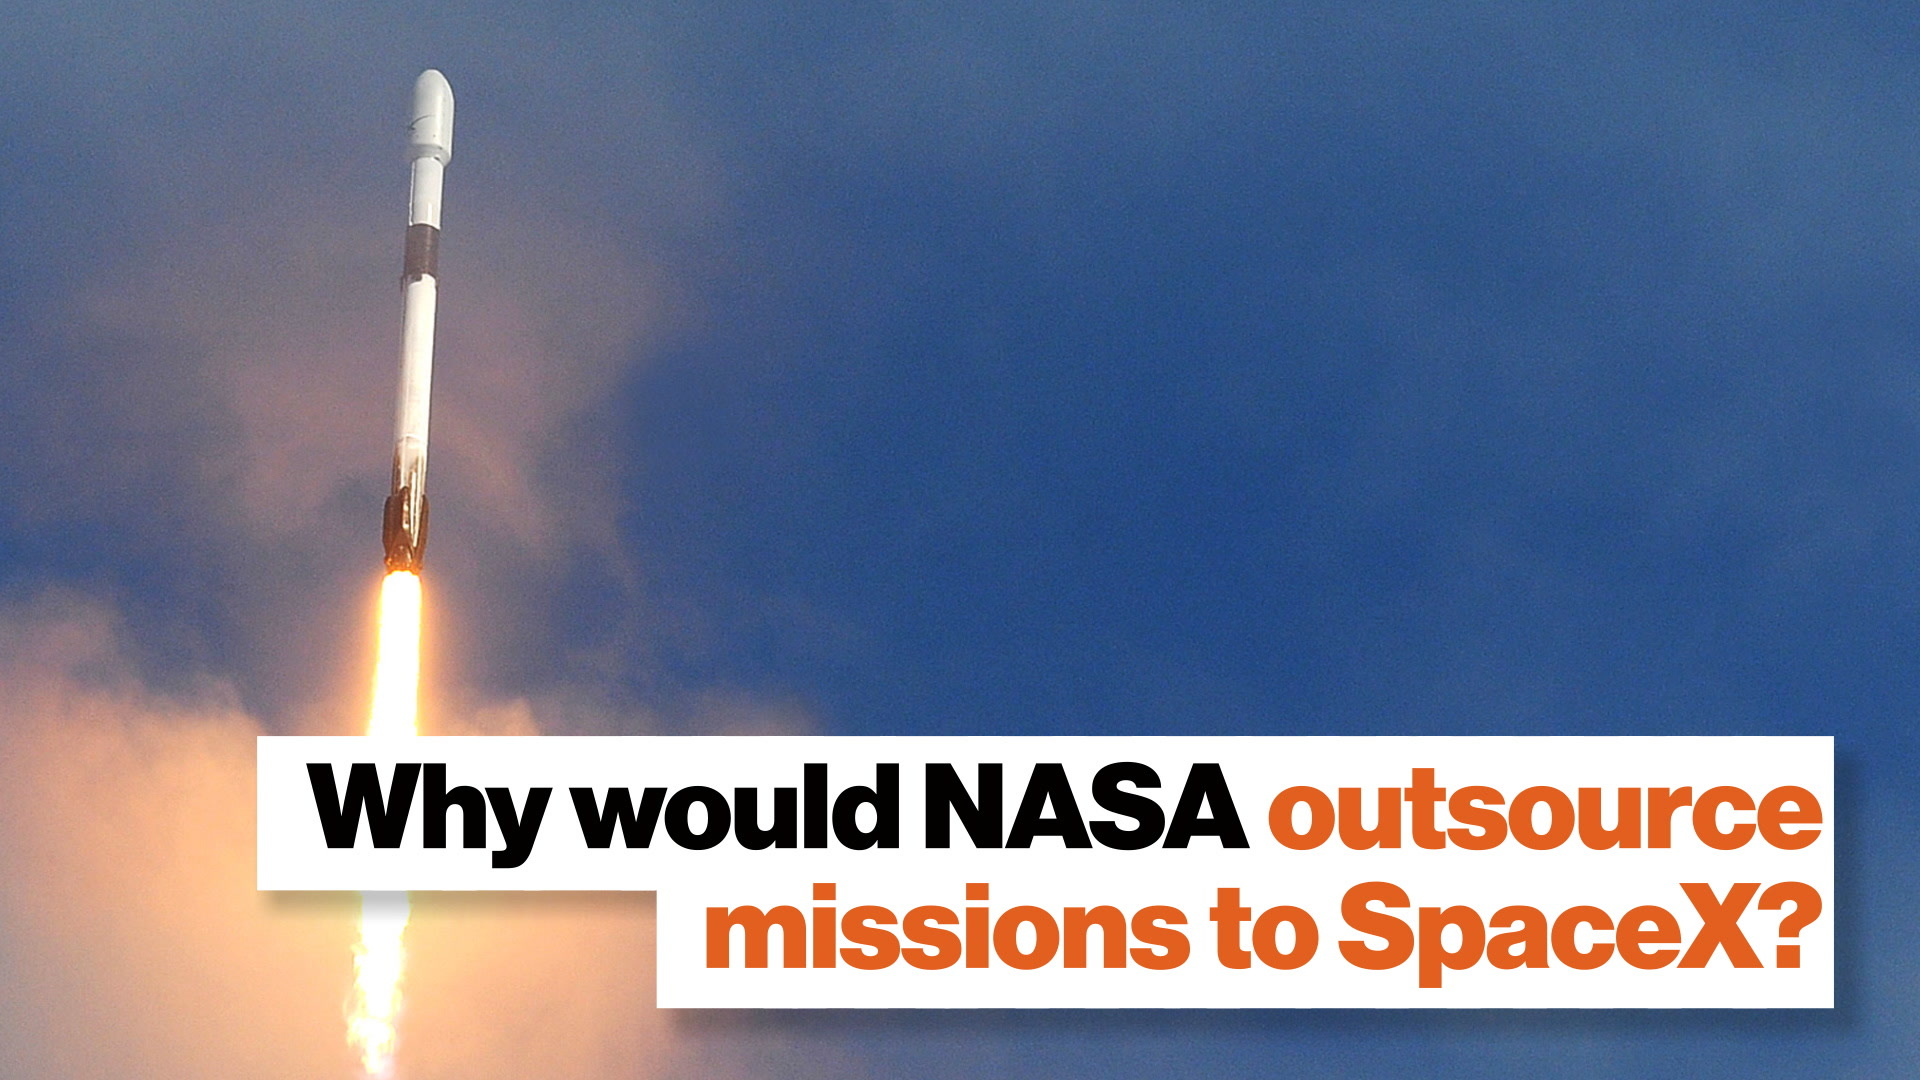 Why would NASA outsource missions to SpaceX?